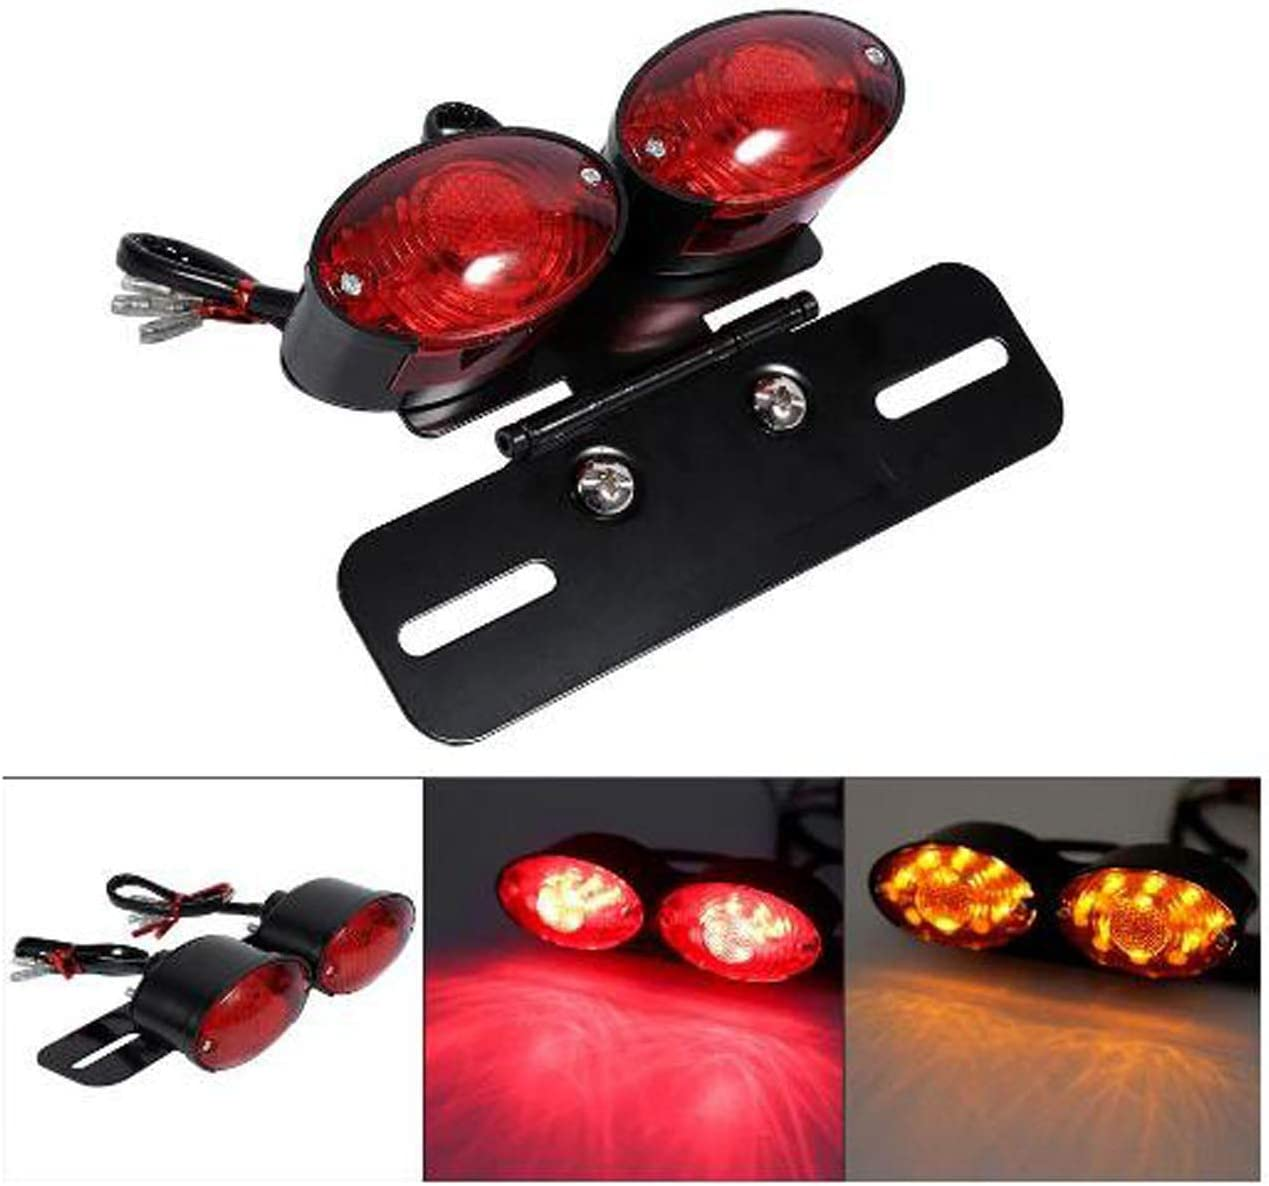 HANEU Support de feux arri/ère LED pour Quad CB ATV Cruiser Cafe Racer Dual Sport XL FL Buggy Custom Chrome//Red